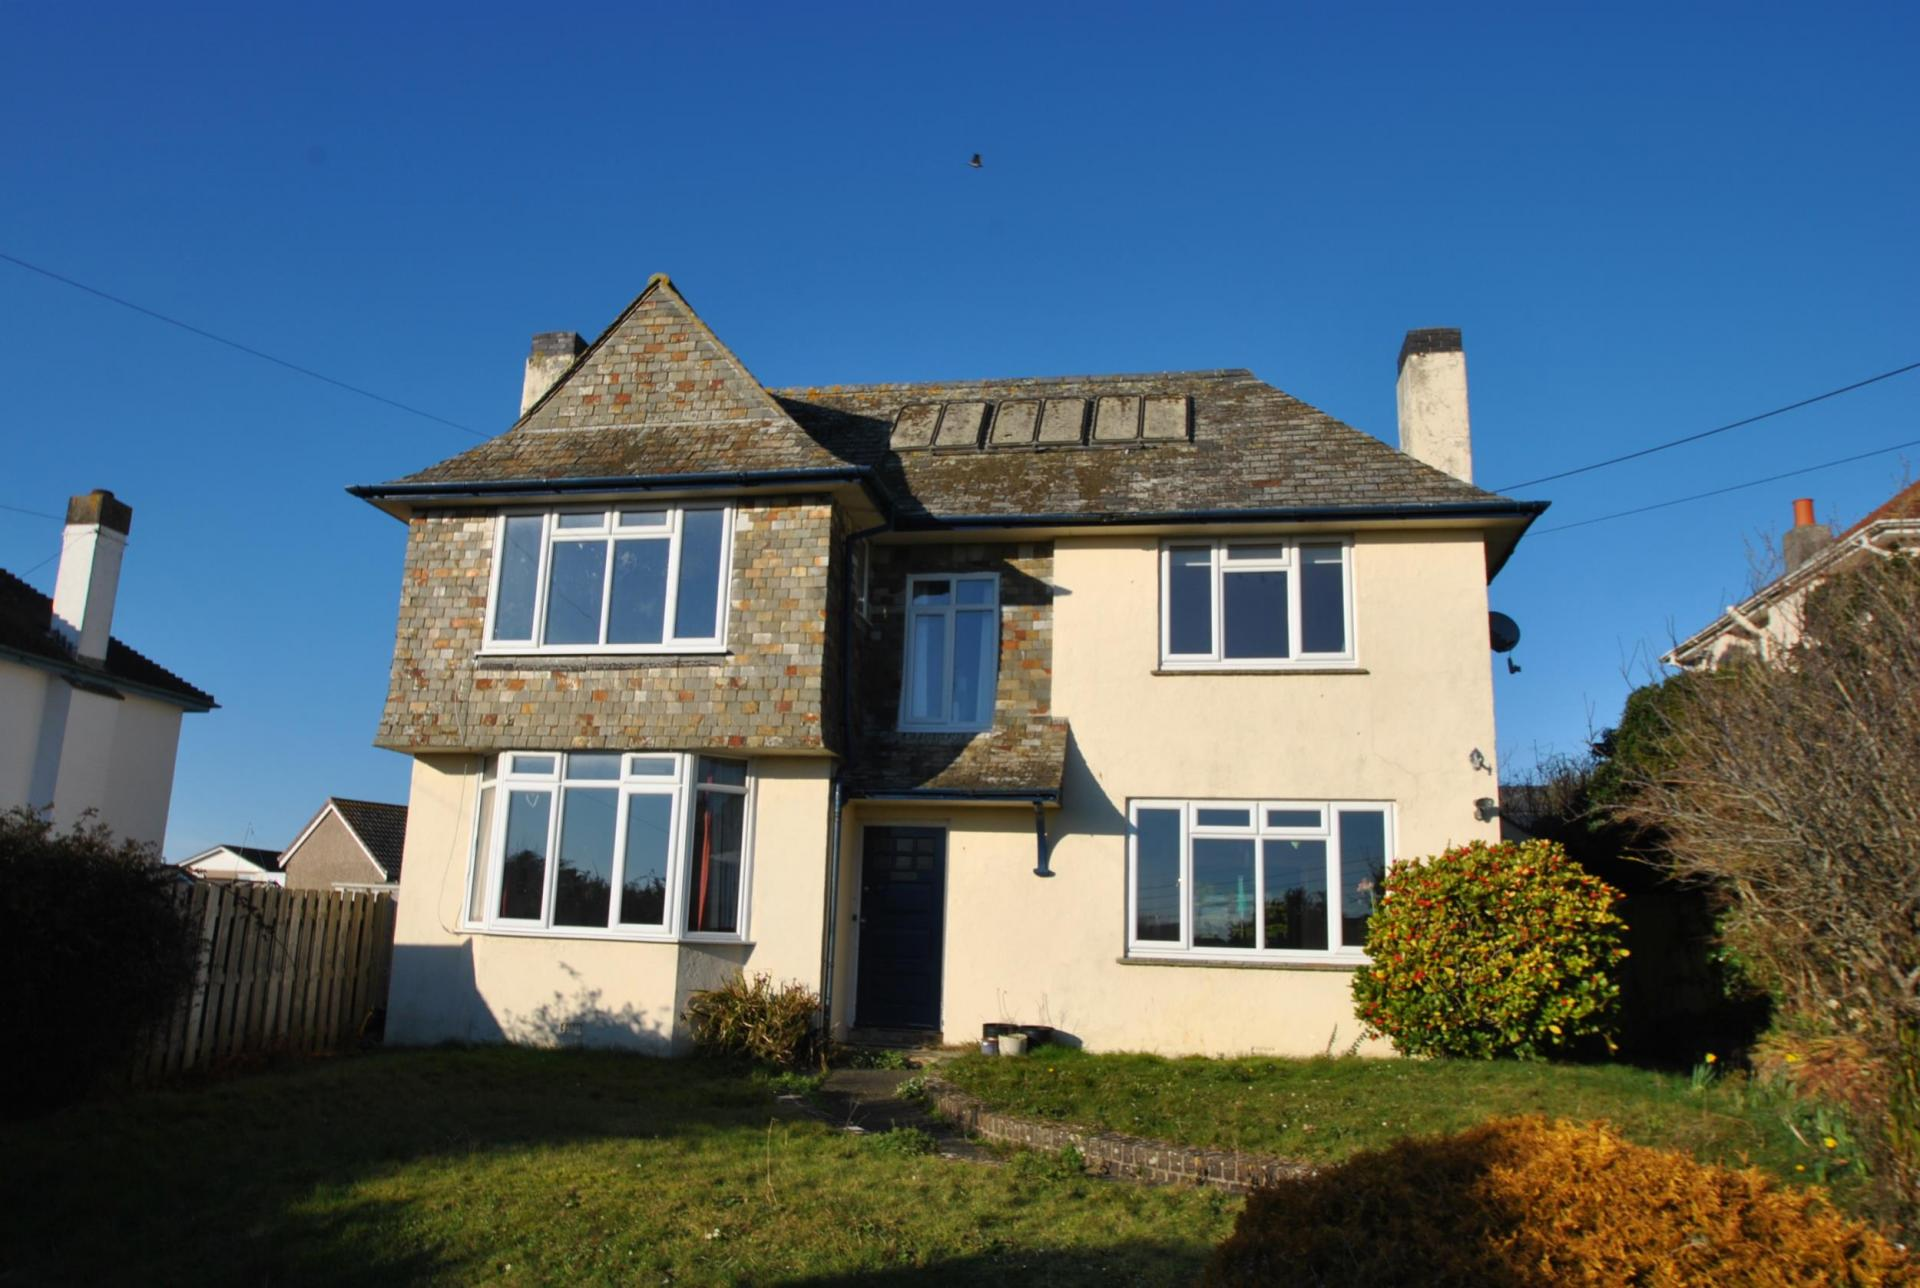 4 Bedroom Detached House For Sale In Cornwall